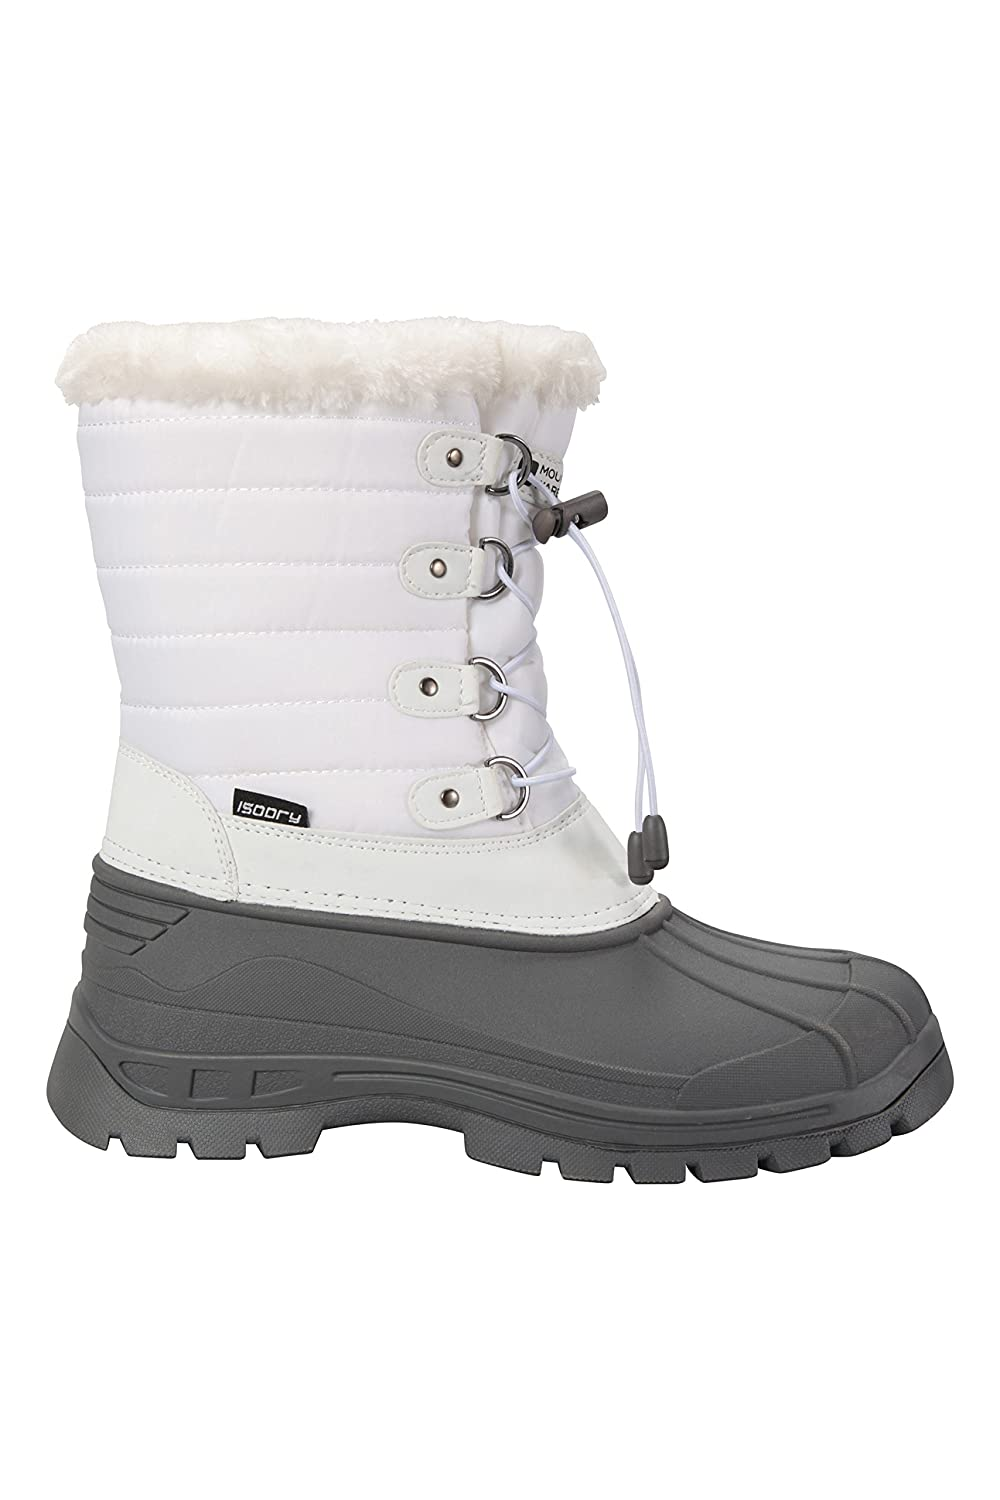 ee38a5446 Mountain Warehouse Whistler Womens Snow Boot -Waterproof Winter Shoes:  Amazon.ca: Sports & Outdoors